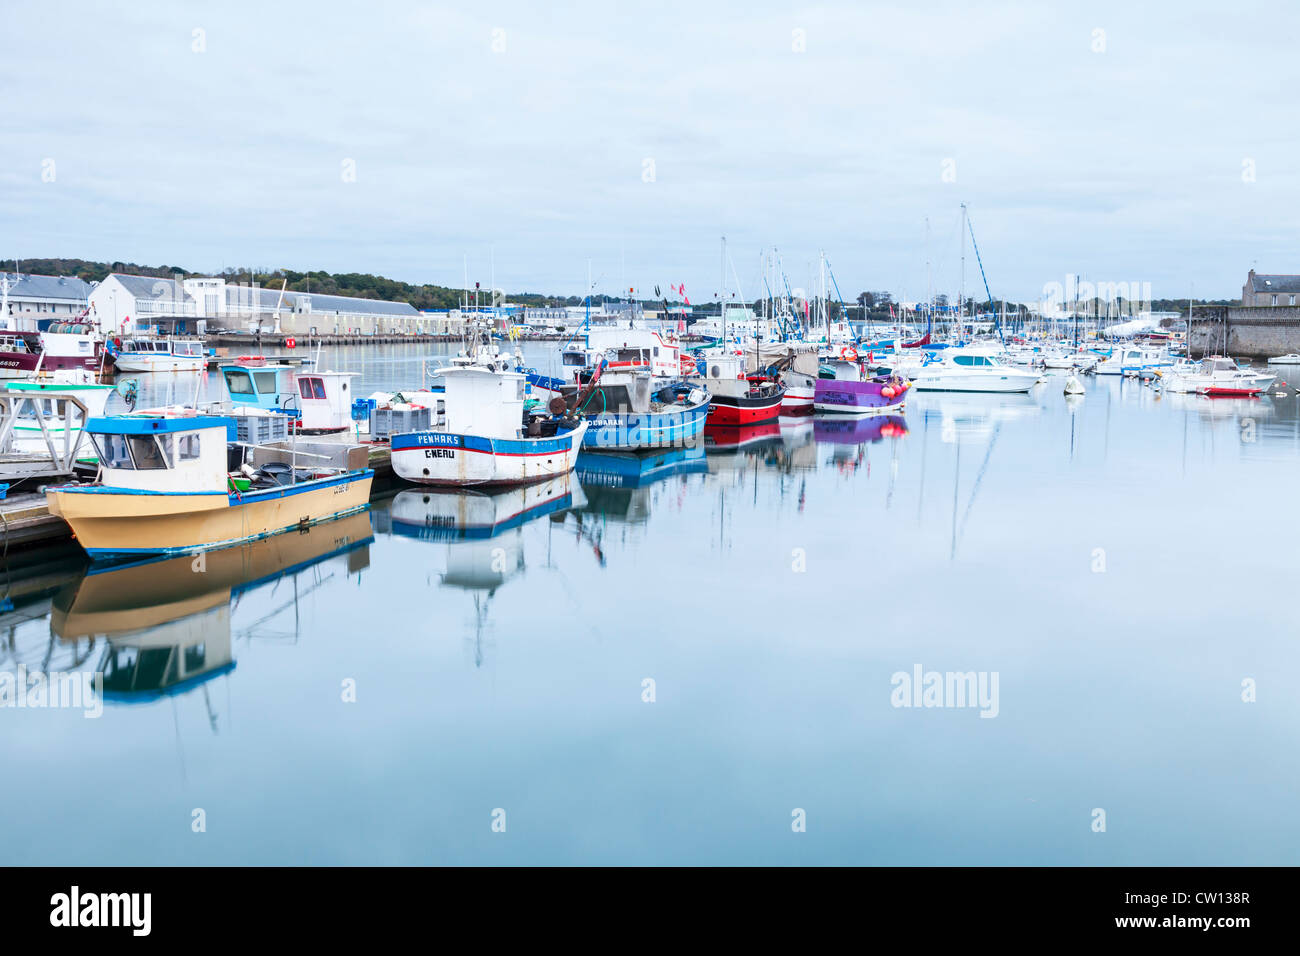 Fishing boats in the harbour at Concarneau, Brittany, France, and the fish auction house on the left. - Stock Image